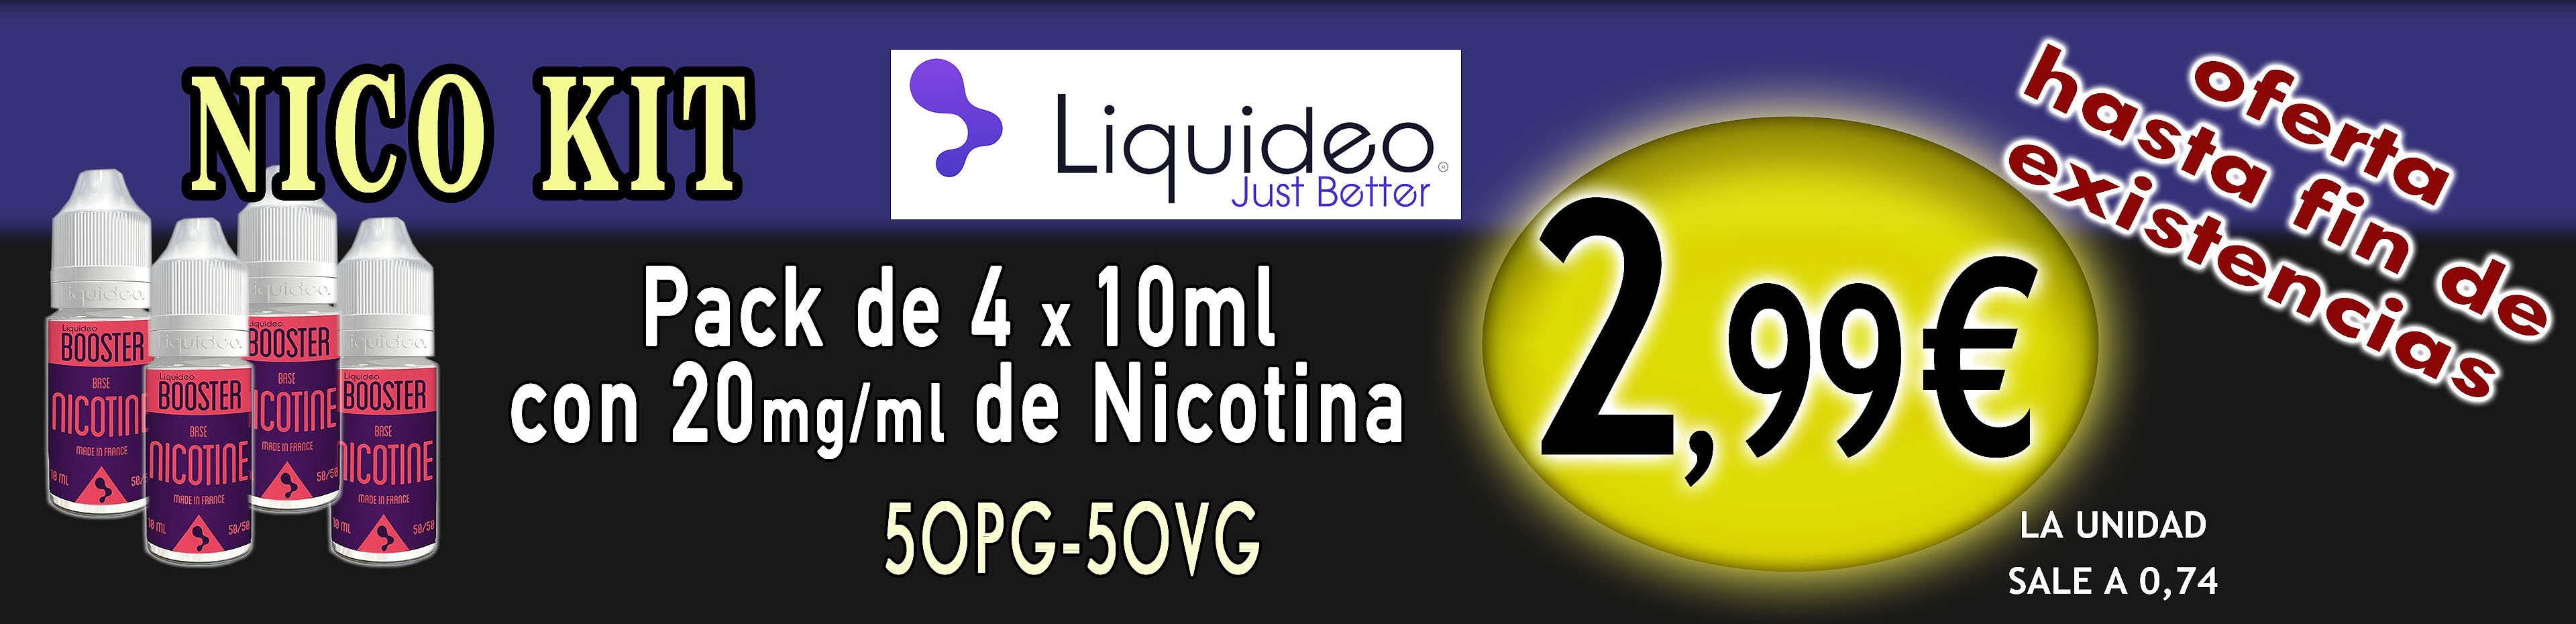 Oferta Pack nicokits Liquideo